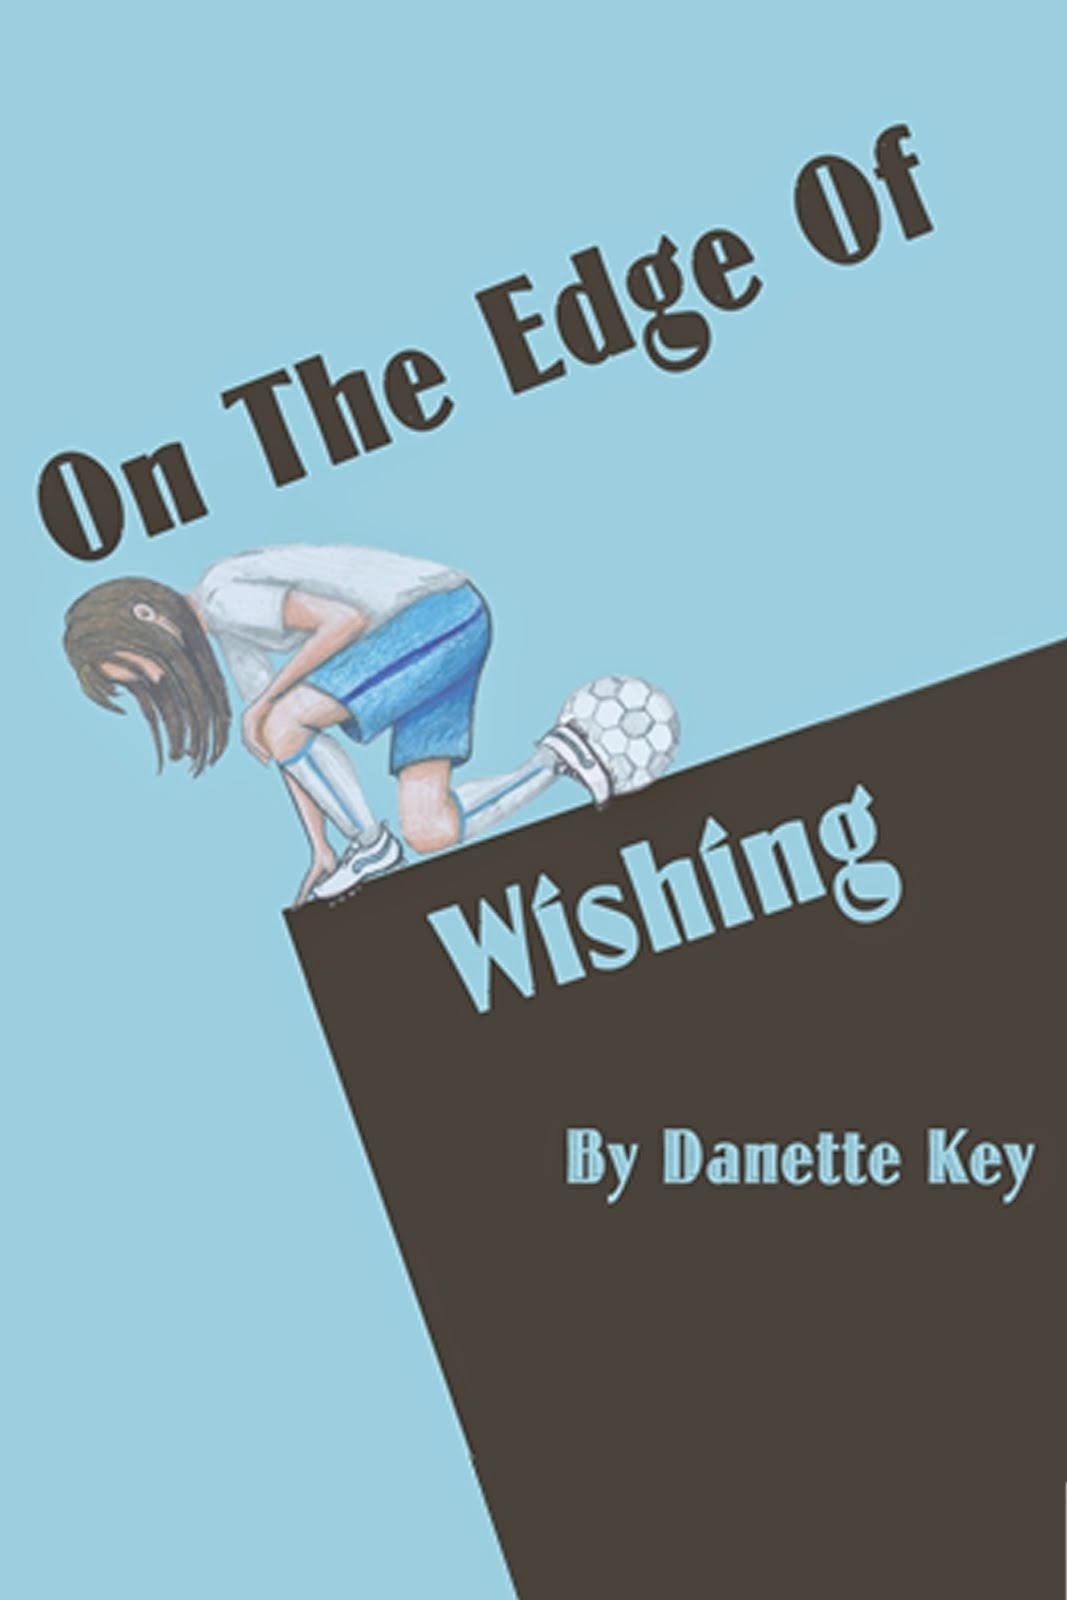 On The Edge of Wishing